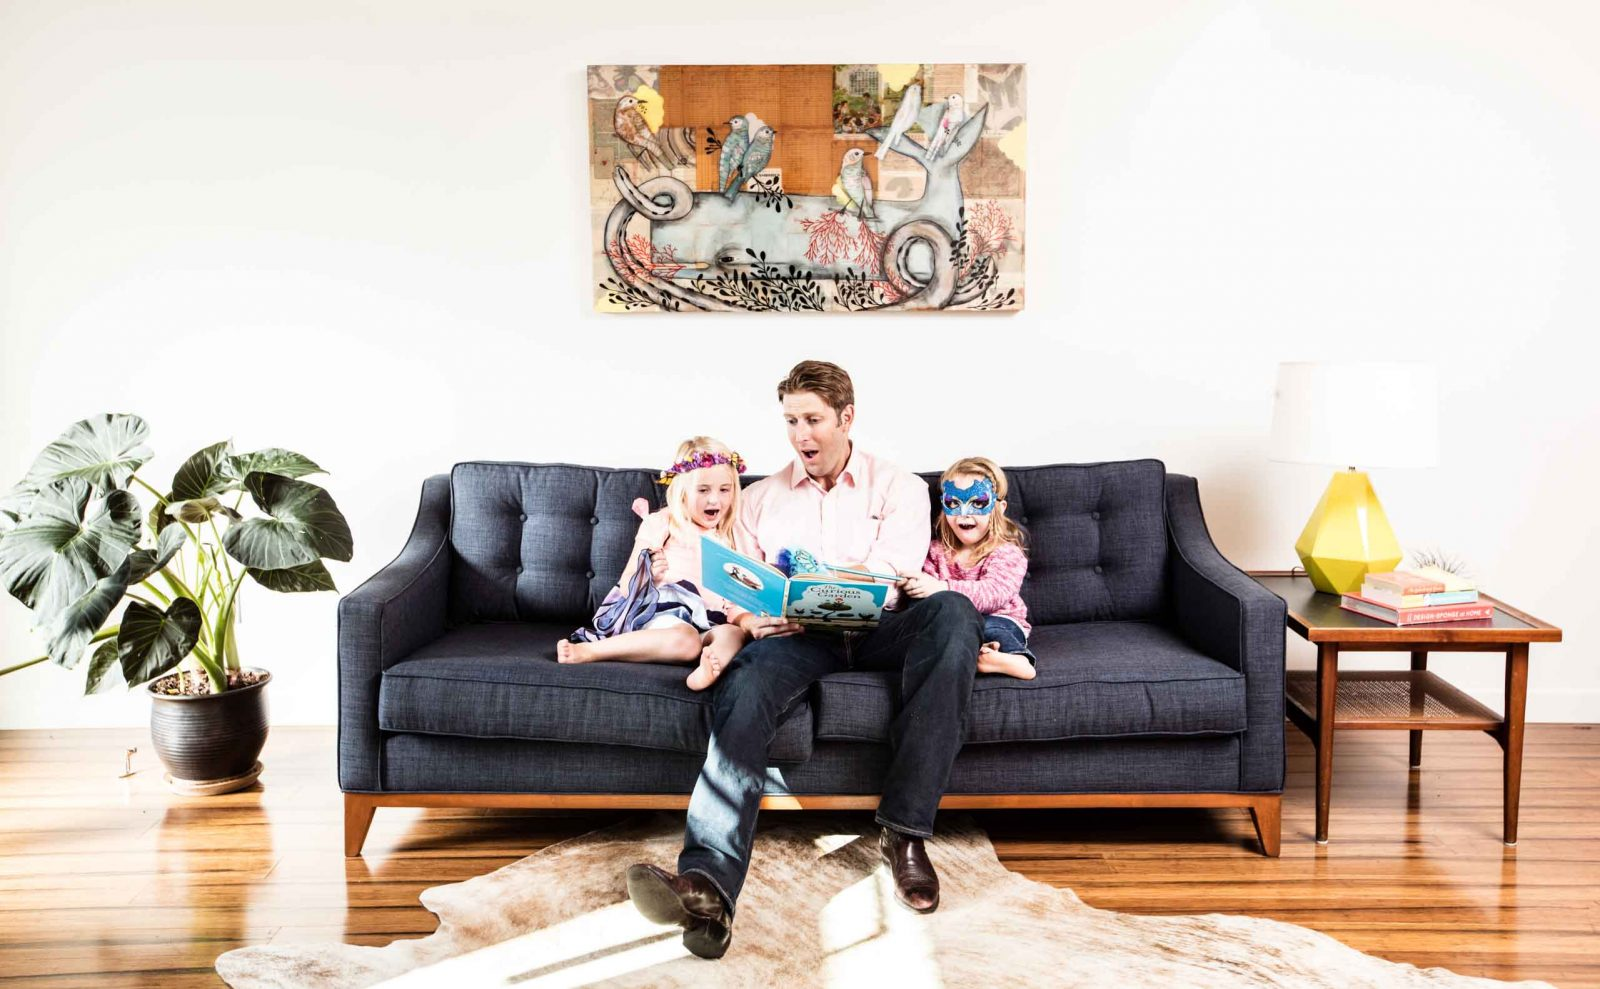 Father and children sitting on designer couch